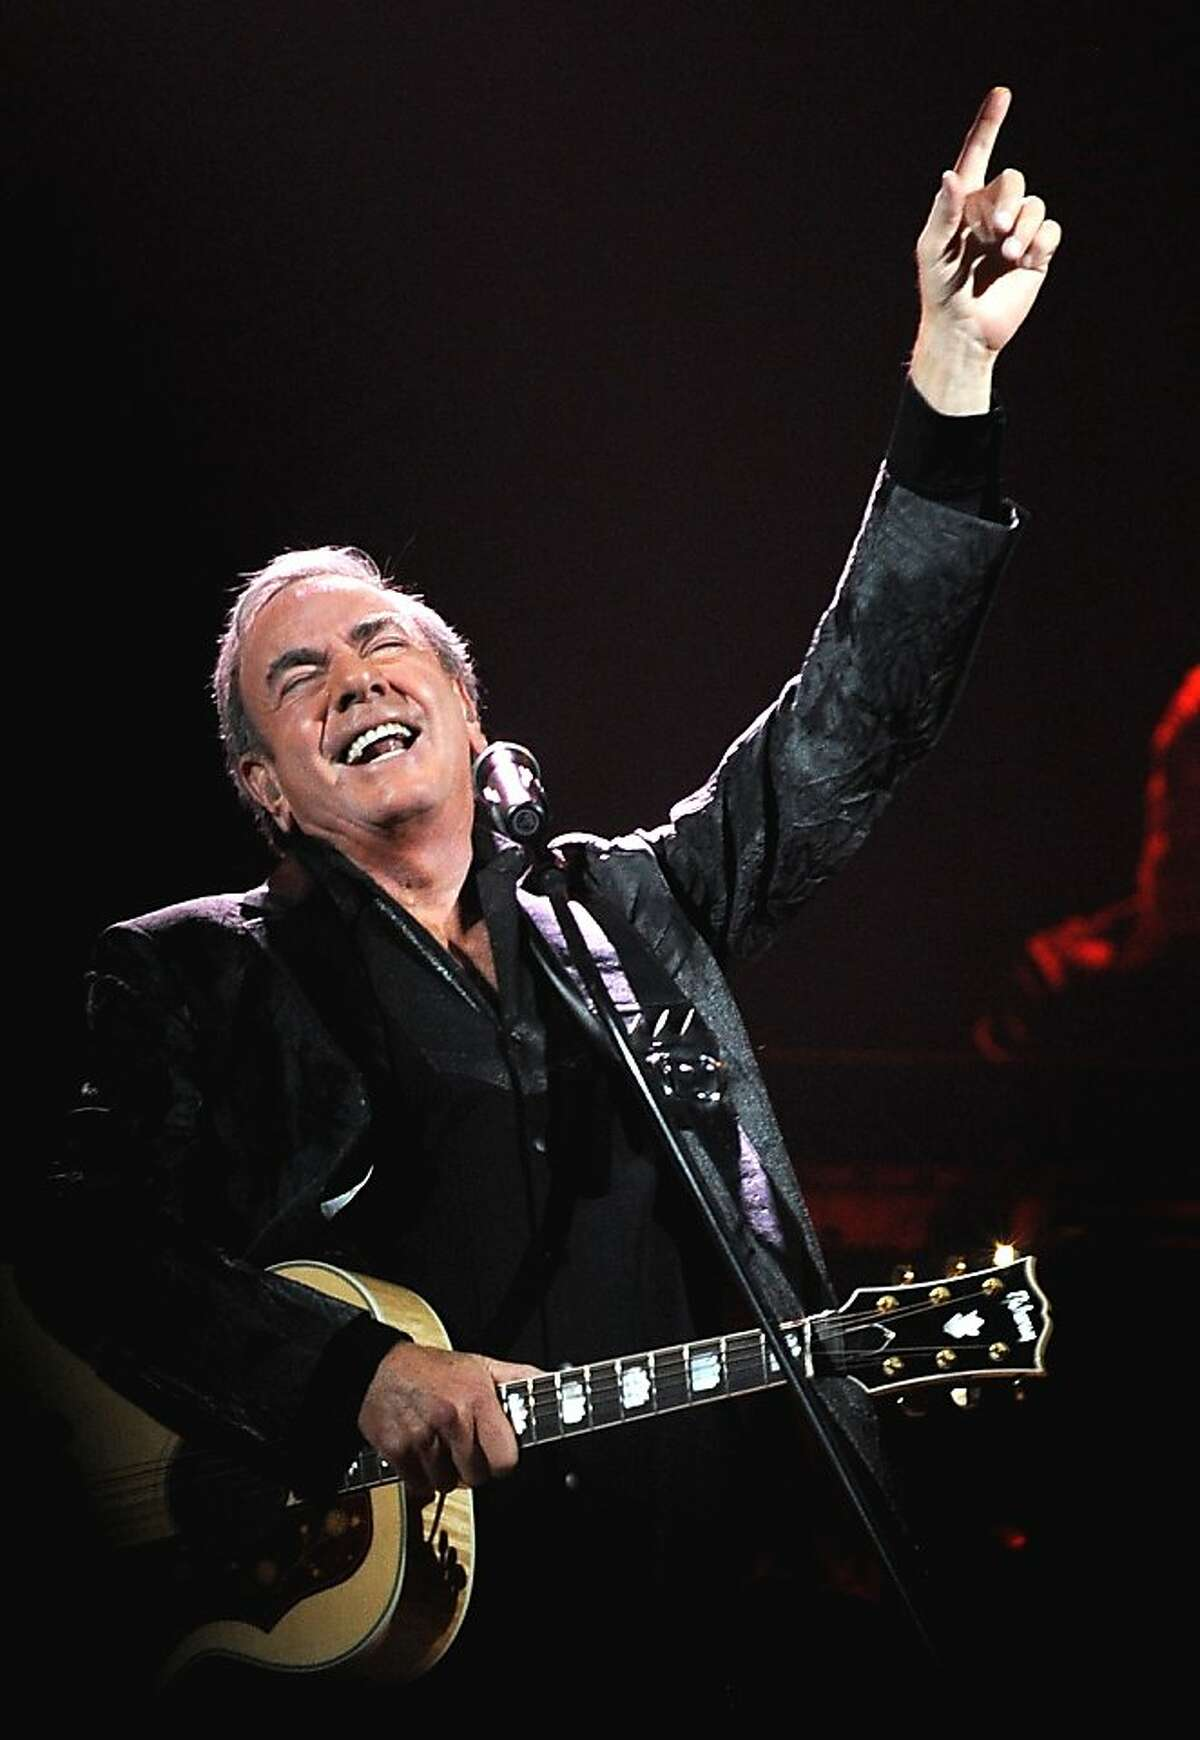 In this photo provided by the Las Vegas News Bureau, after 5 decades of performing, being inducted into the Songwriter Hall of Fame and Rock and Roll Hall of Fame Neil Diamond packs the house at the MGM Grand Arena on the Las Vegas Strip Saturday, Sept. 1, 2012. (AP Photo/Las Vegas News Bureau, Glenn Pinkerton)